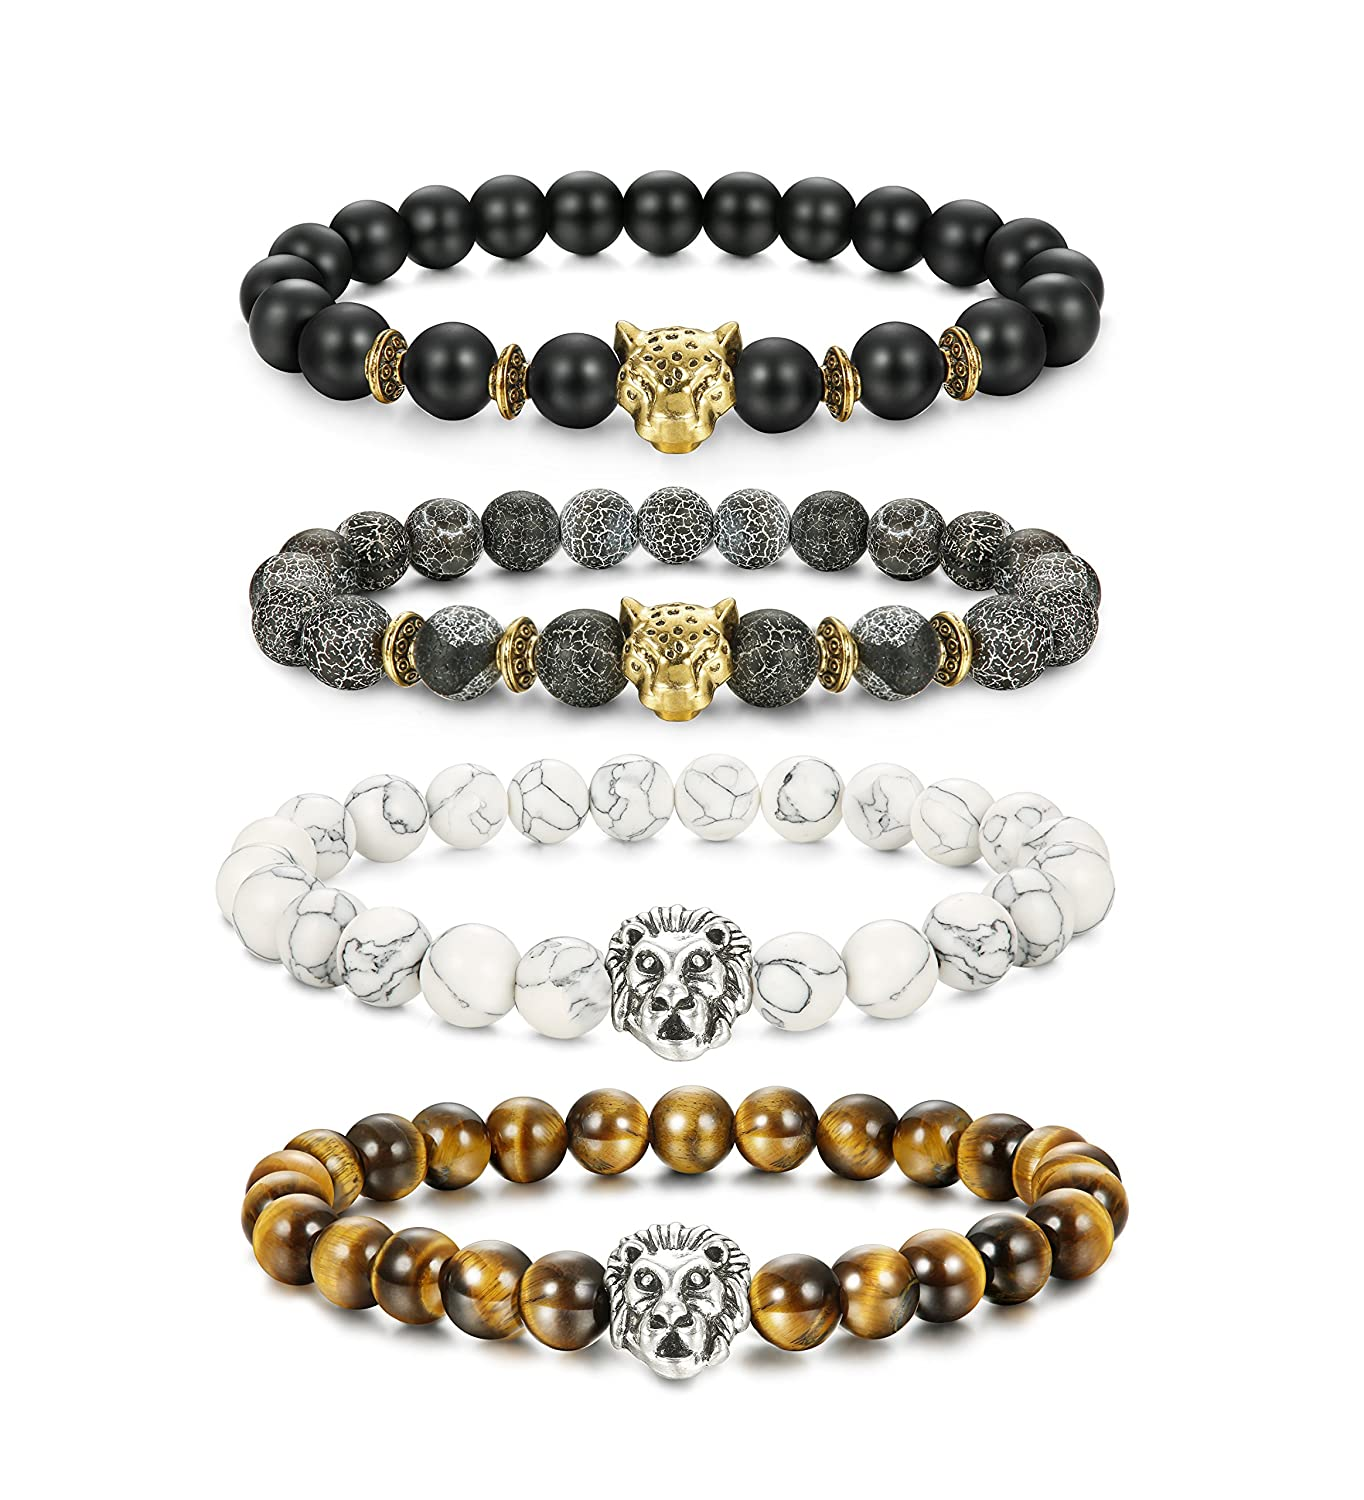 LOLIAS 4 Pcs Lava Rock Bead Bracelet for Men Leopard Lion Bracelet Set Adjustable 8MM Beads 4LLB-092-Y